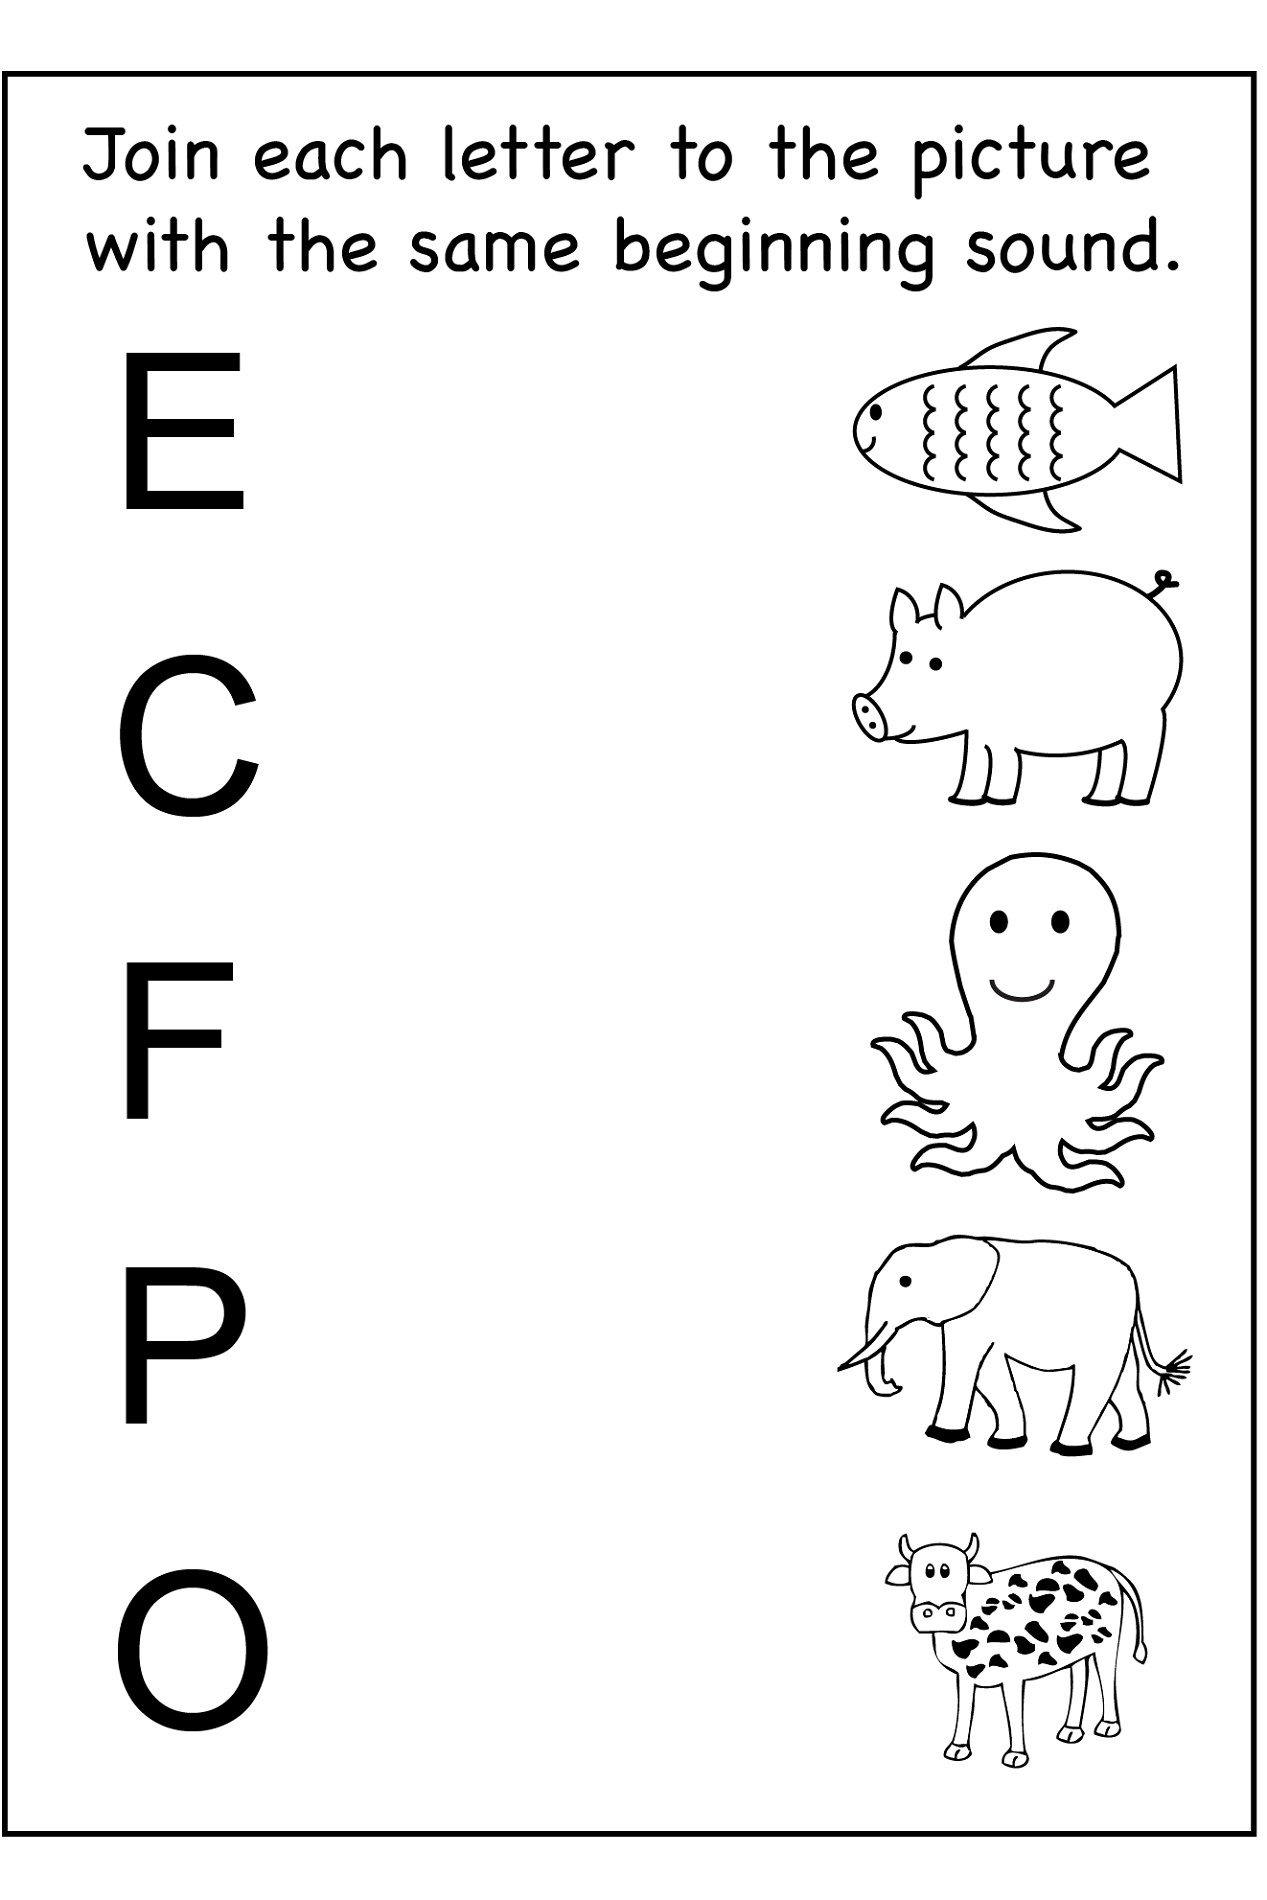 Printable Activities for Kids Free